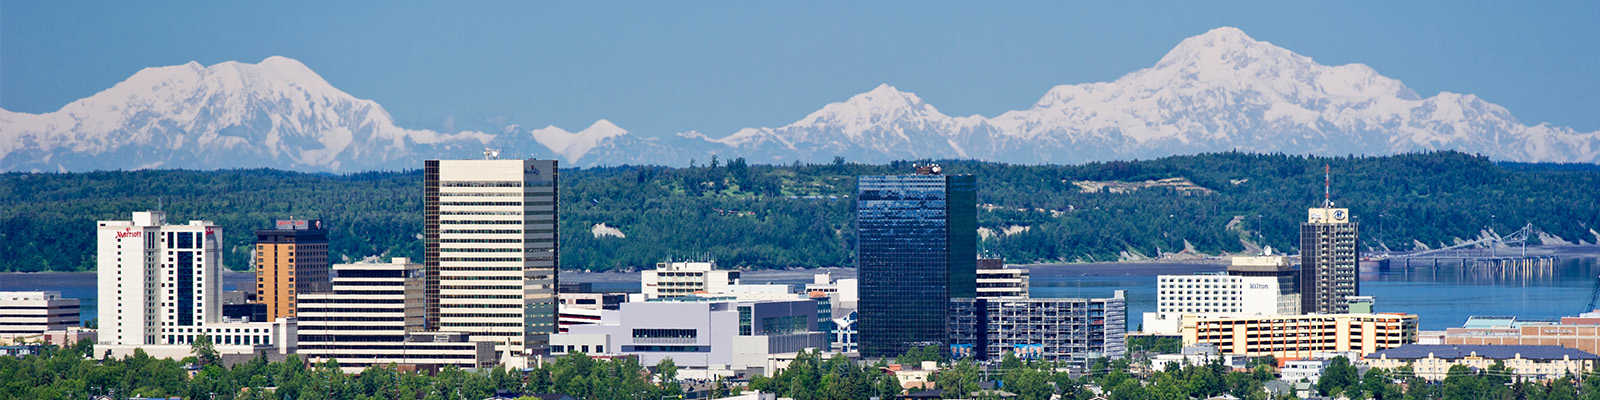 Downtown Anchorage seen with the Alaska Range to the north.